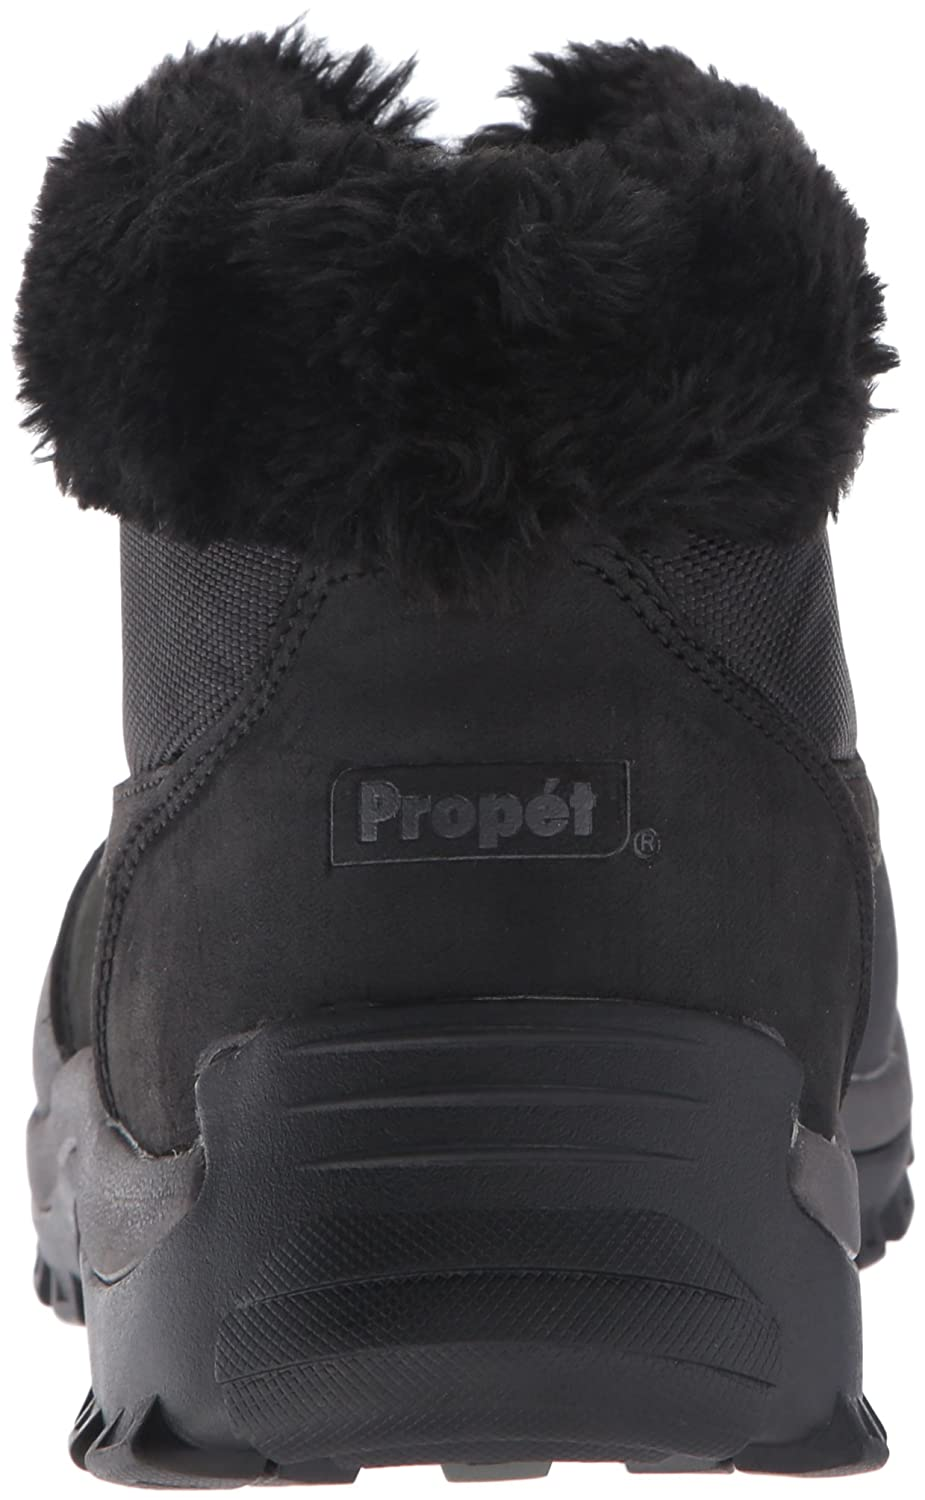 Propet Women's Blizzard Ankle Zip Ii B(M) Winter Boot B01AYP4E4I 7.5 B(M) Ii US|Black/Nylon 4815be